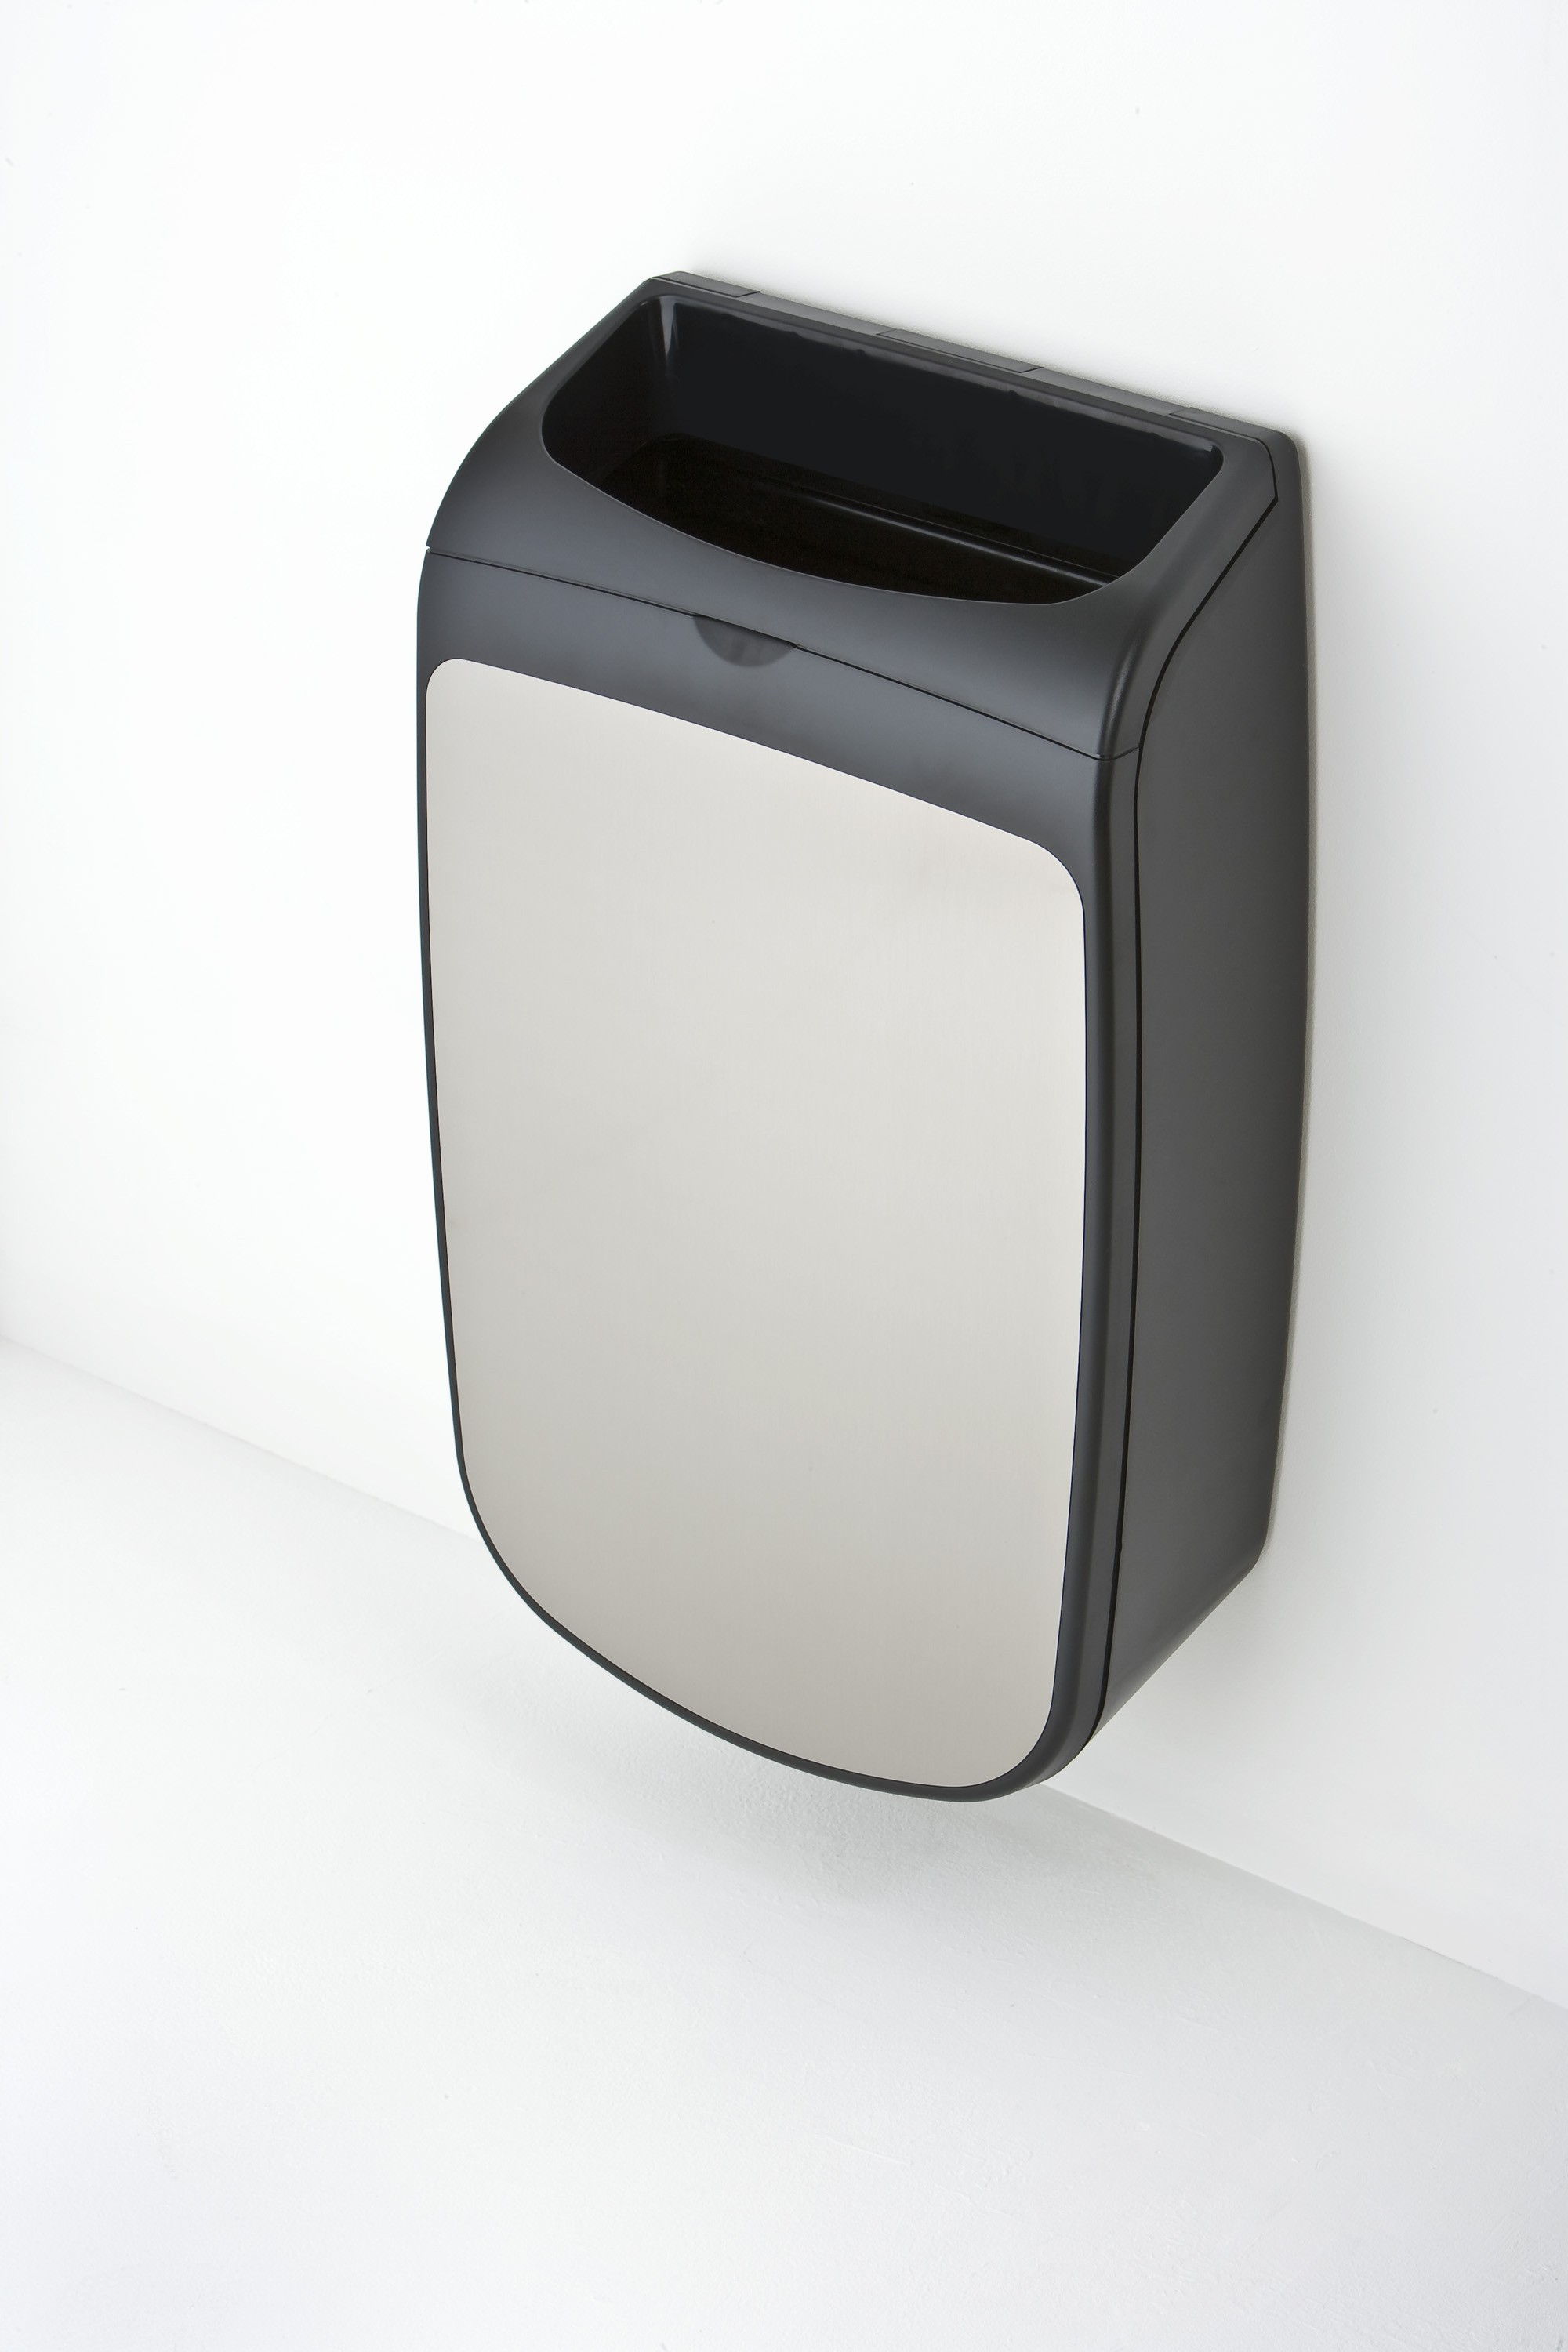 Washroom waste bins